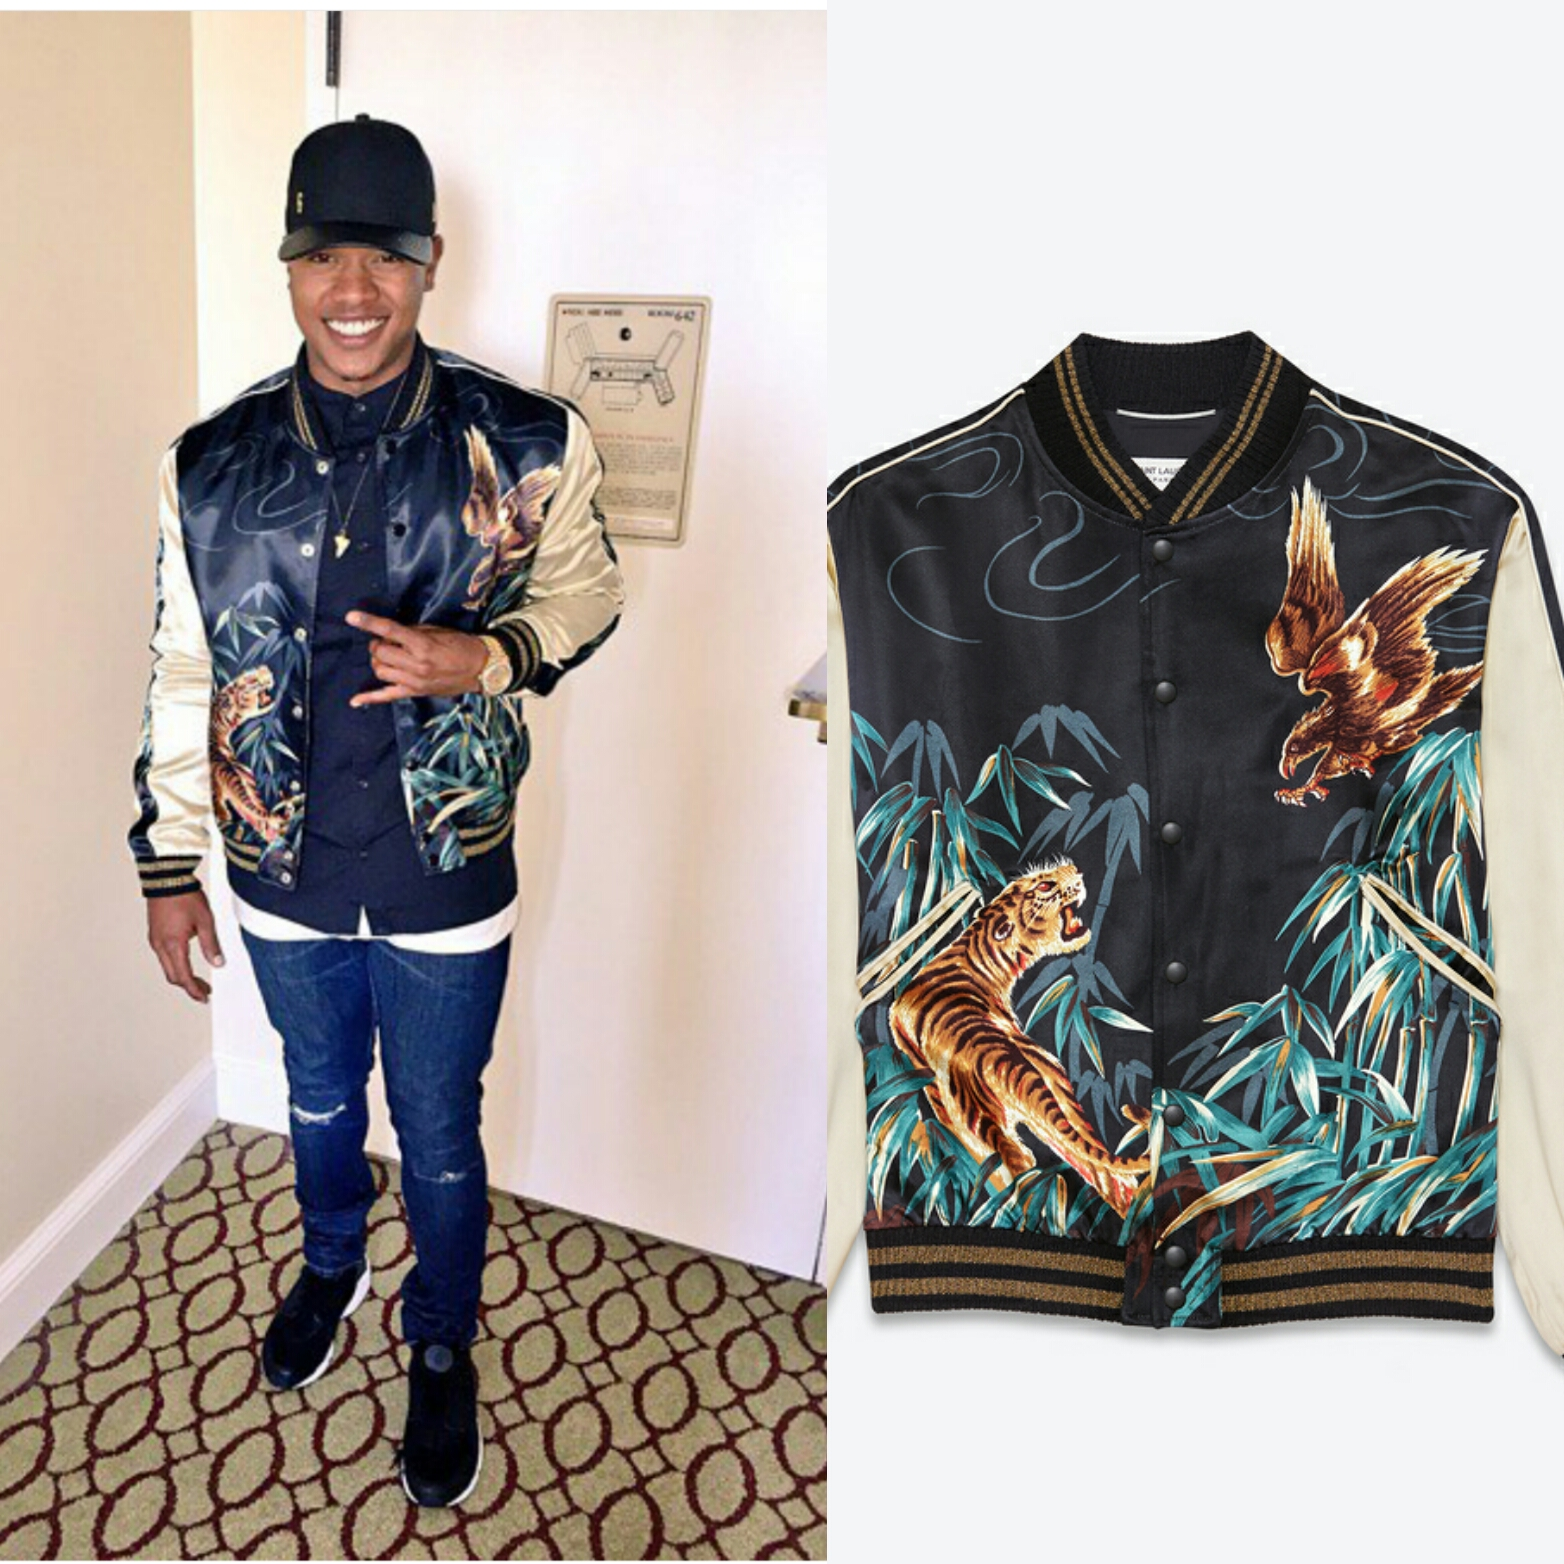 STYLE: MLB Marcus Stroman's Instagram Saint Laurent TEDDY Jacket